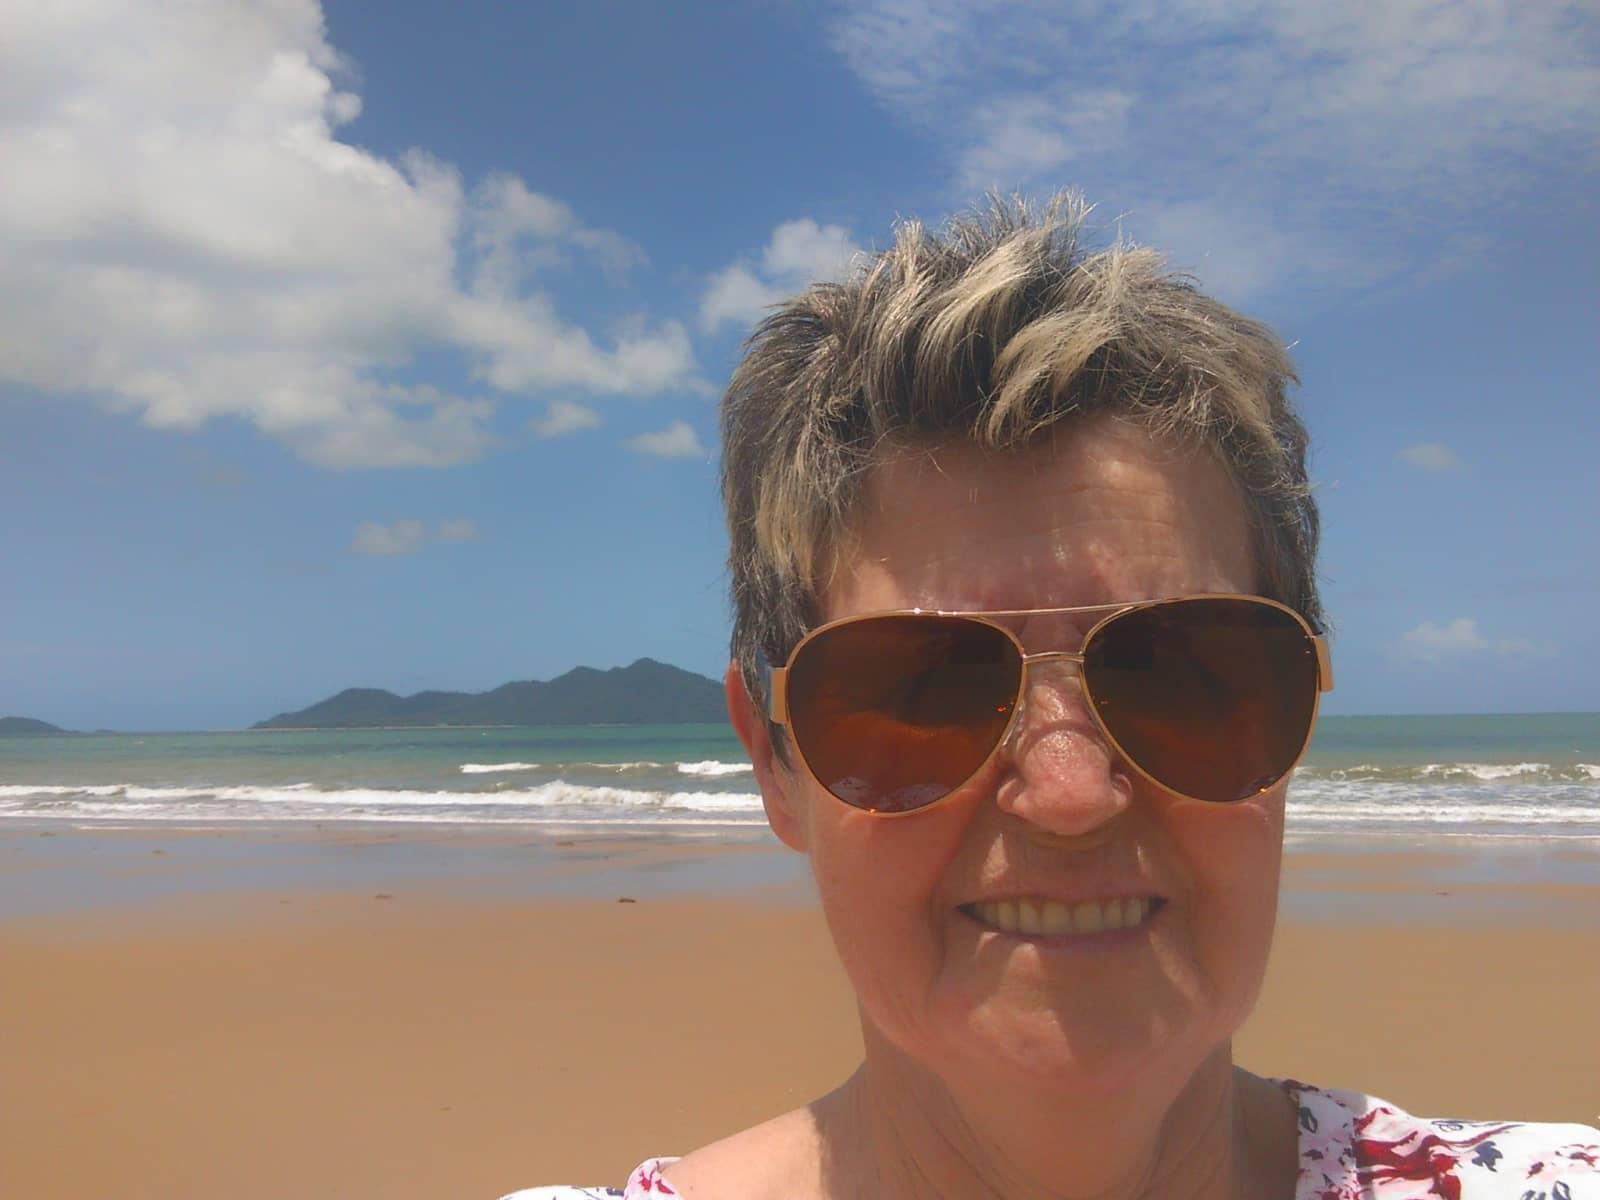 Noreen from Cairns, Queensland, Australia